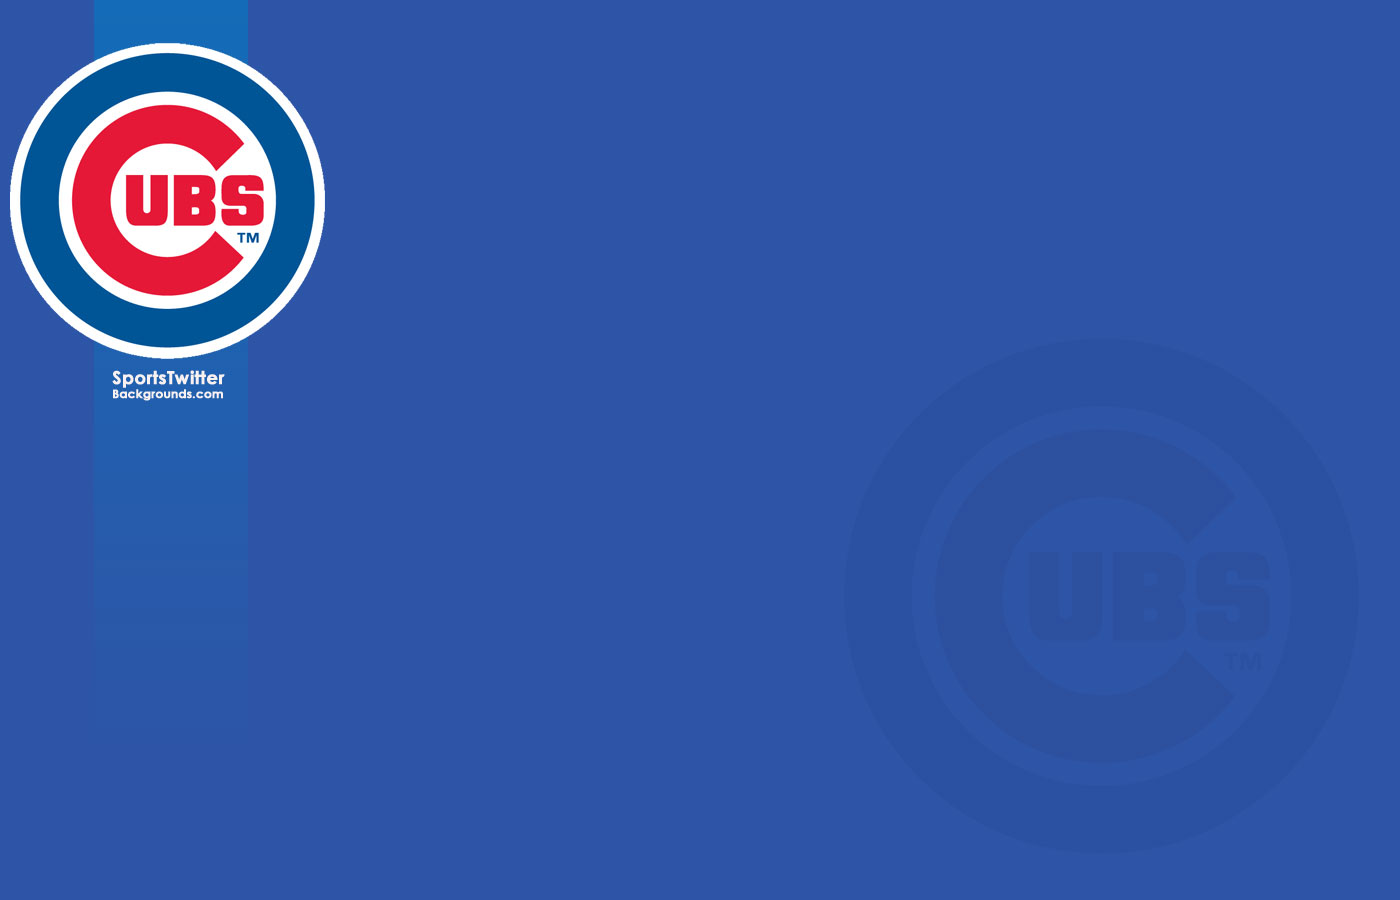 Enjoy this new Chicago Cubs desktop background 1400x900